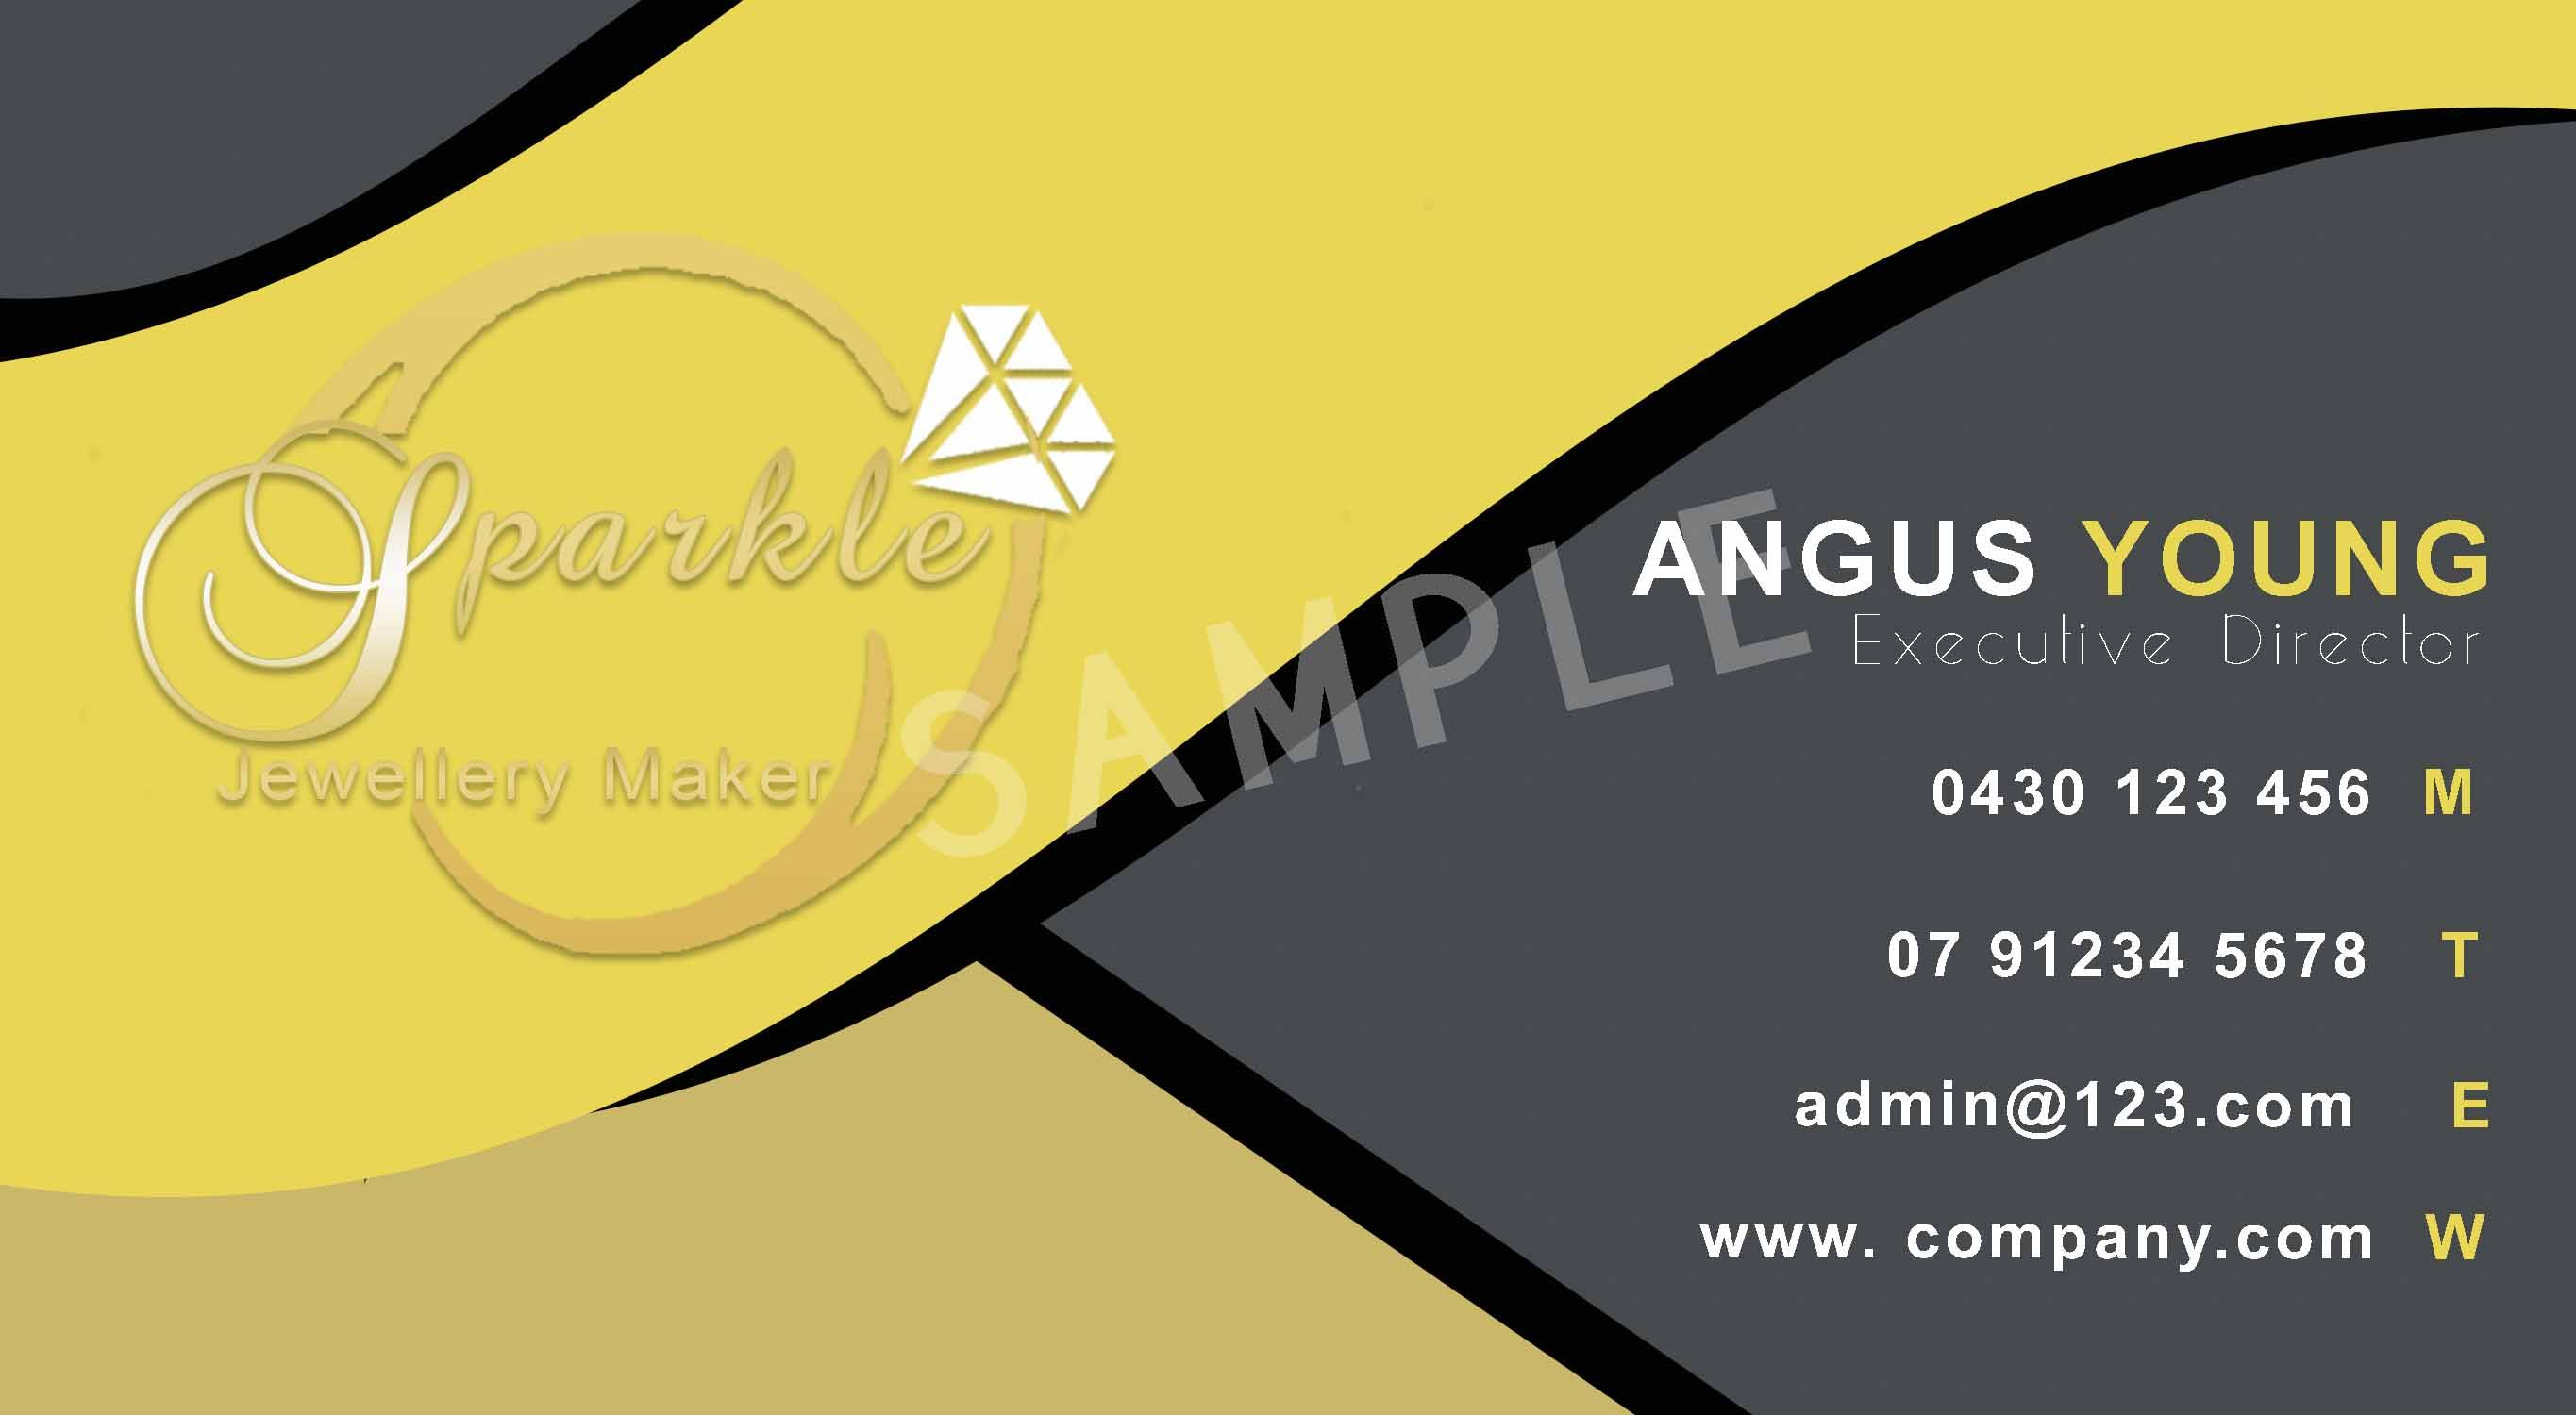 Business Card Sample No 9 For Sale – Business Card Sample